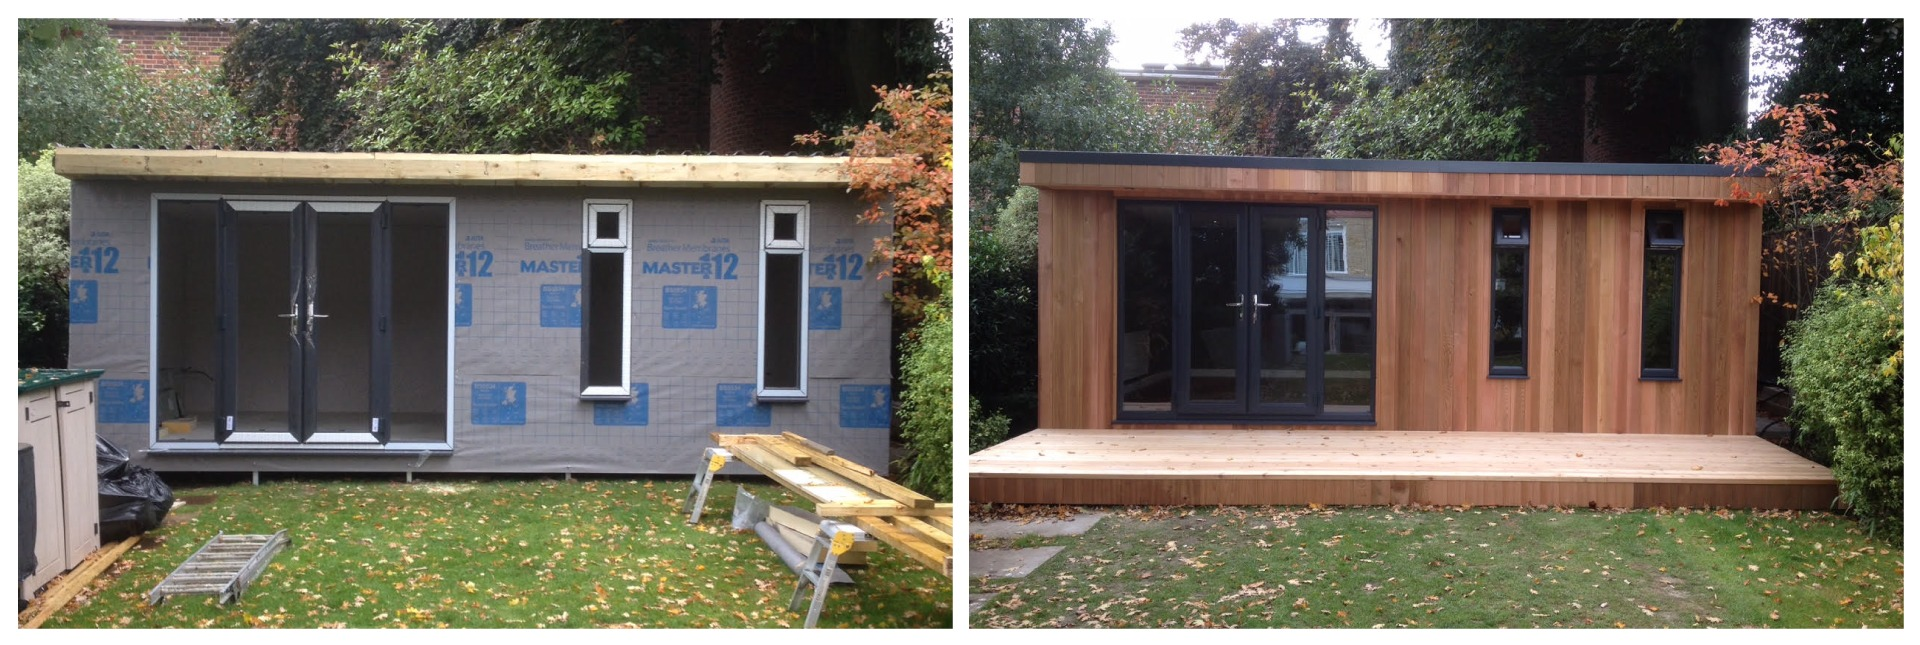 garden room under construction and completed